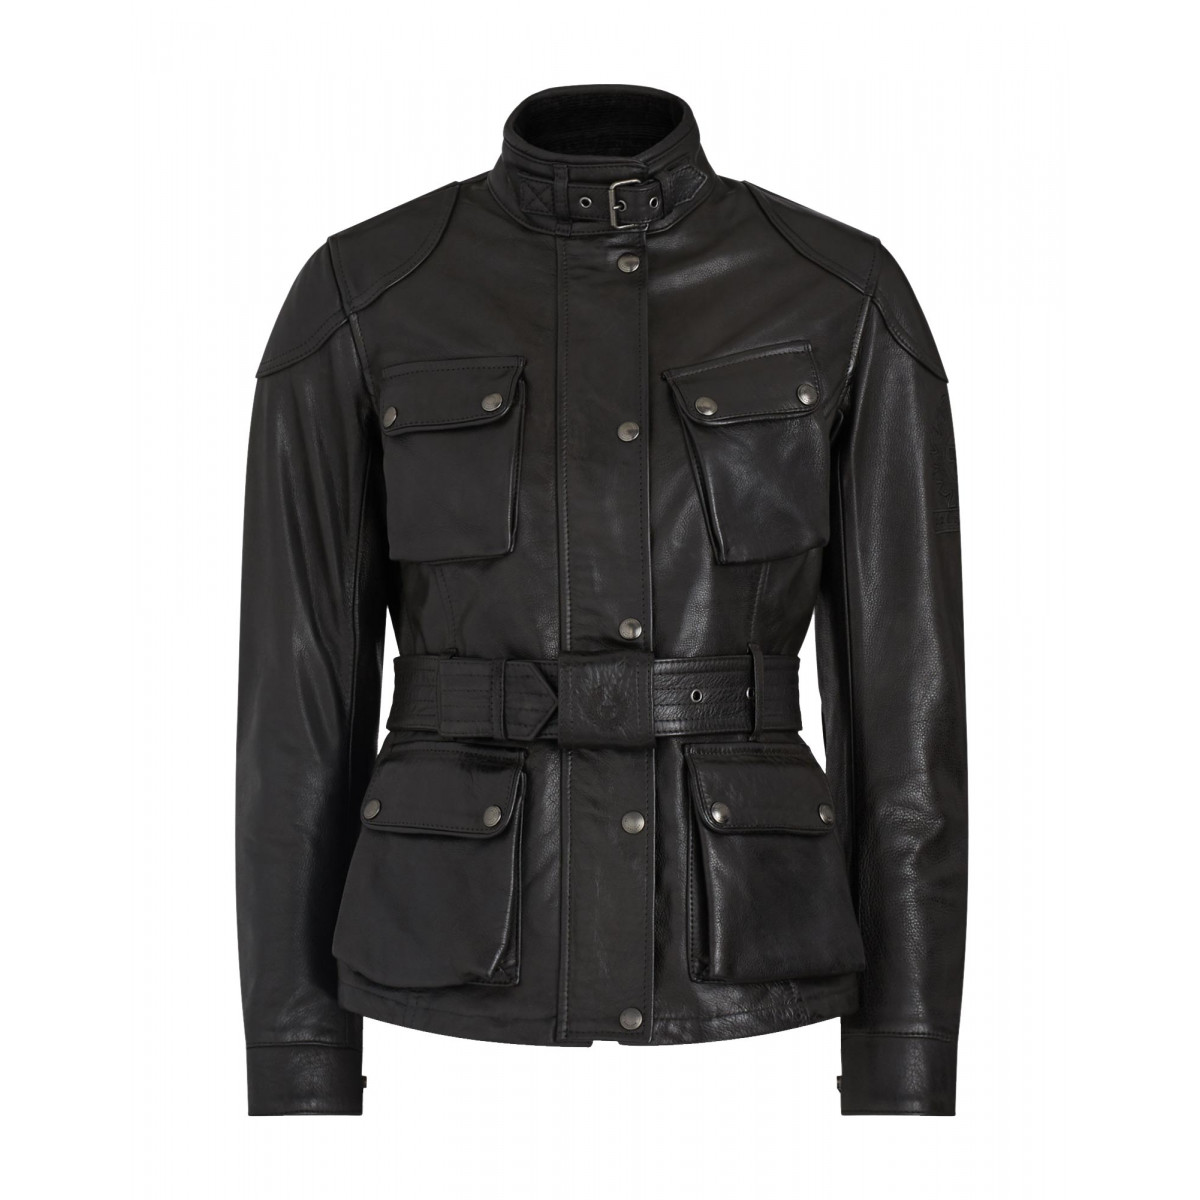 Belstaff Trialmaster Pro Hand Waxed Leather Jacket - Antique Black